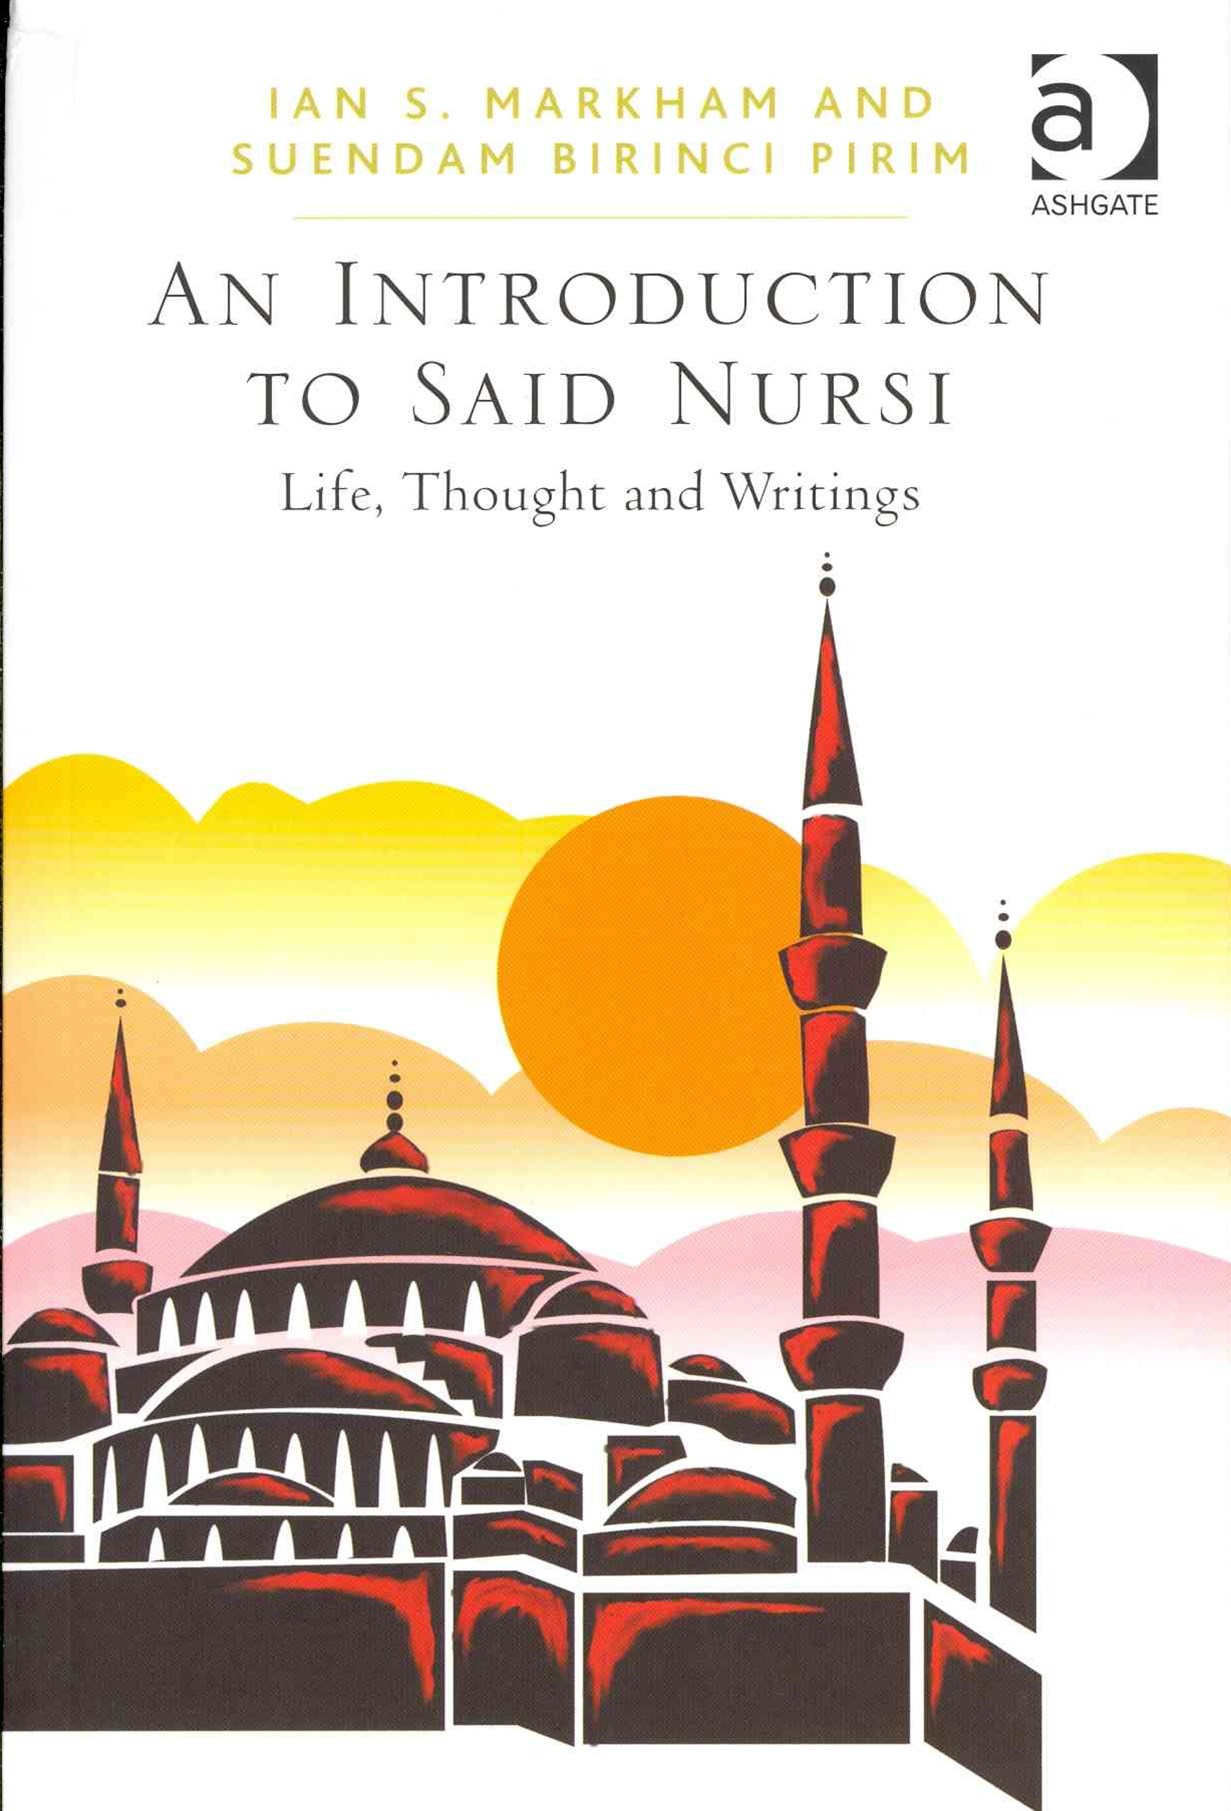 Introduction to Said Nursi